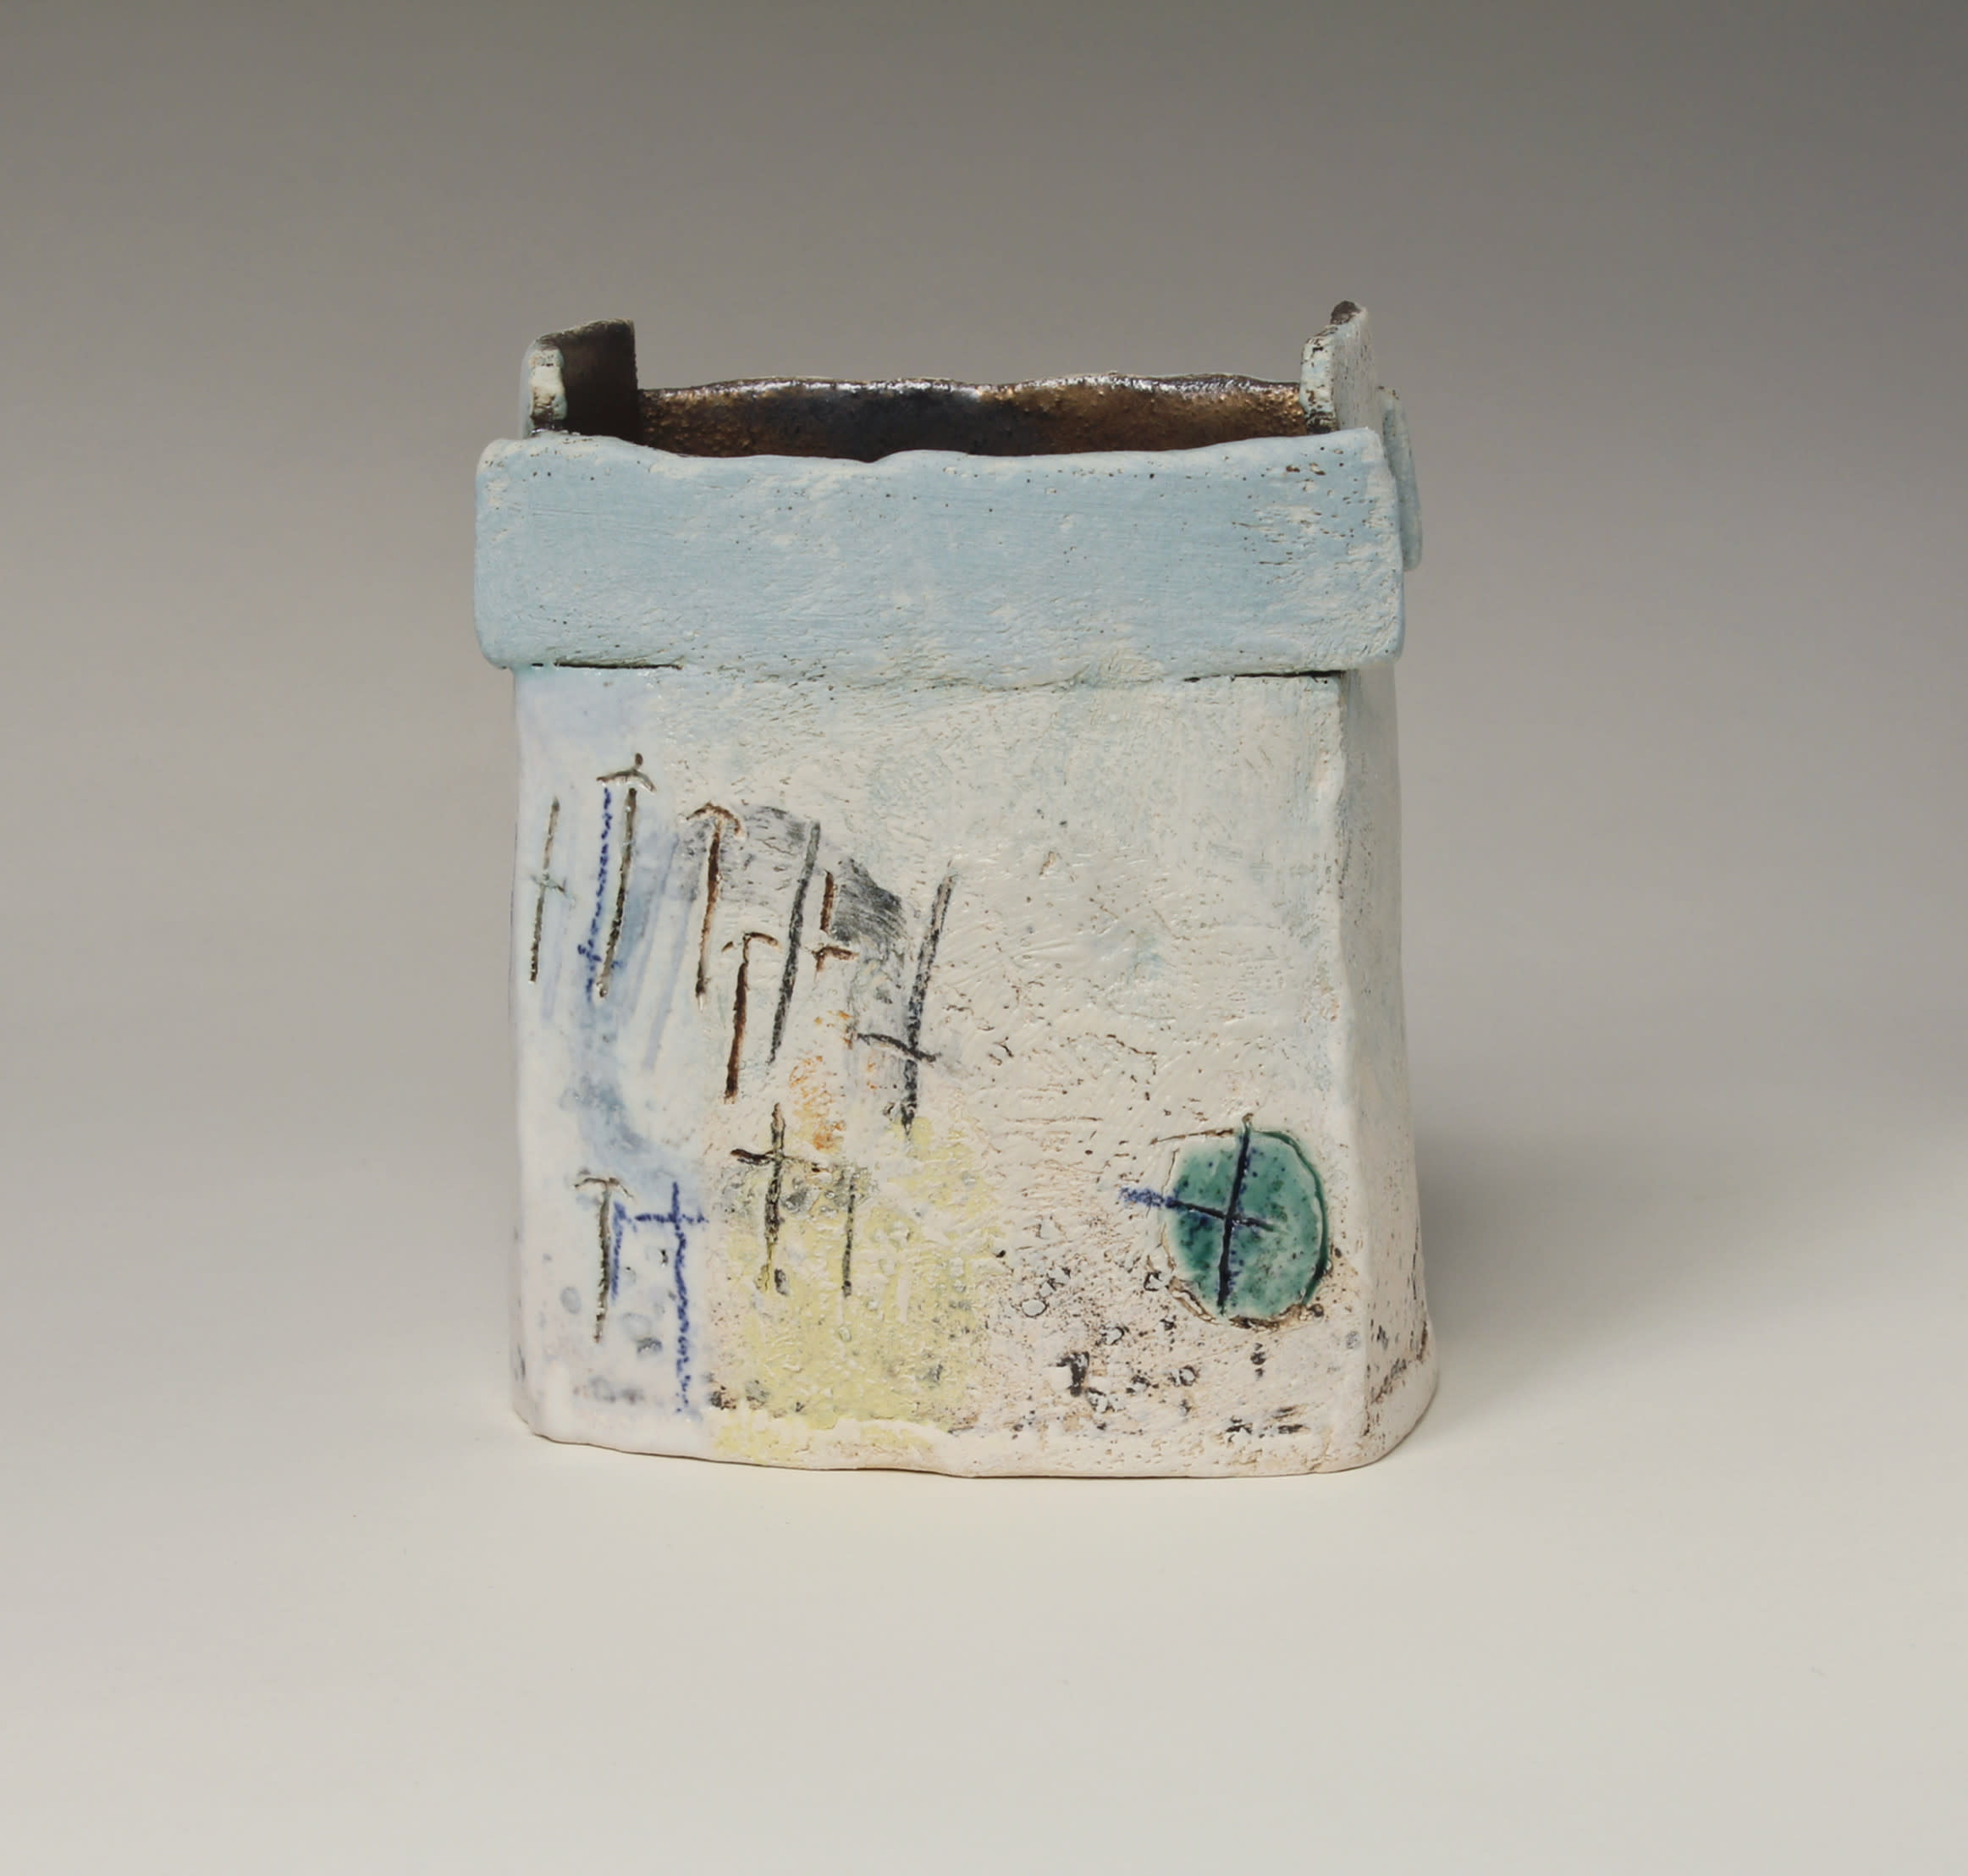 "<span class=""link fancybox-details-link""><a href=""/artists/72-craig-underhill/works/5626-craig-underhill-small-vessel-beach-2018/"">View Detail Page</a></span><div class=""artist""><strong>Craig Underhill</strong></div> <div class=""title""><em>Small Vessel - Beach</em>, 2018</div> <div class=""medium"">slab-built, engobe layers, slips & glazes</div> <div class=""dimensions"">14 x 11 cm<br /> 5 1/2 x 4 3/8 inches</div><div class=""copyright_line"">£ 16 x 10 Months, OwnArt 0% APR</div>"